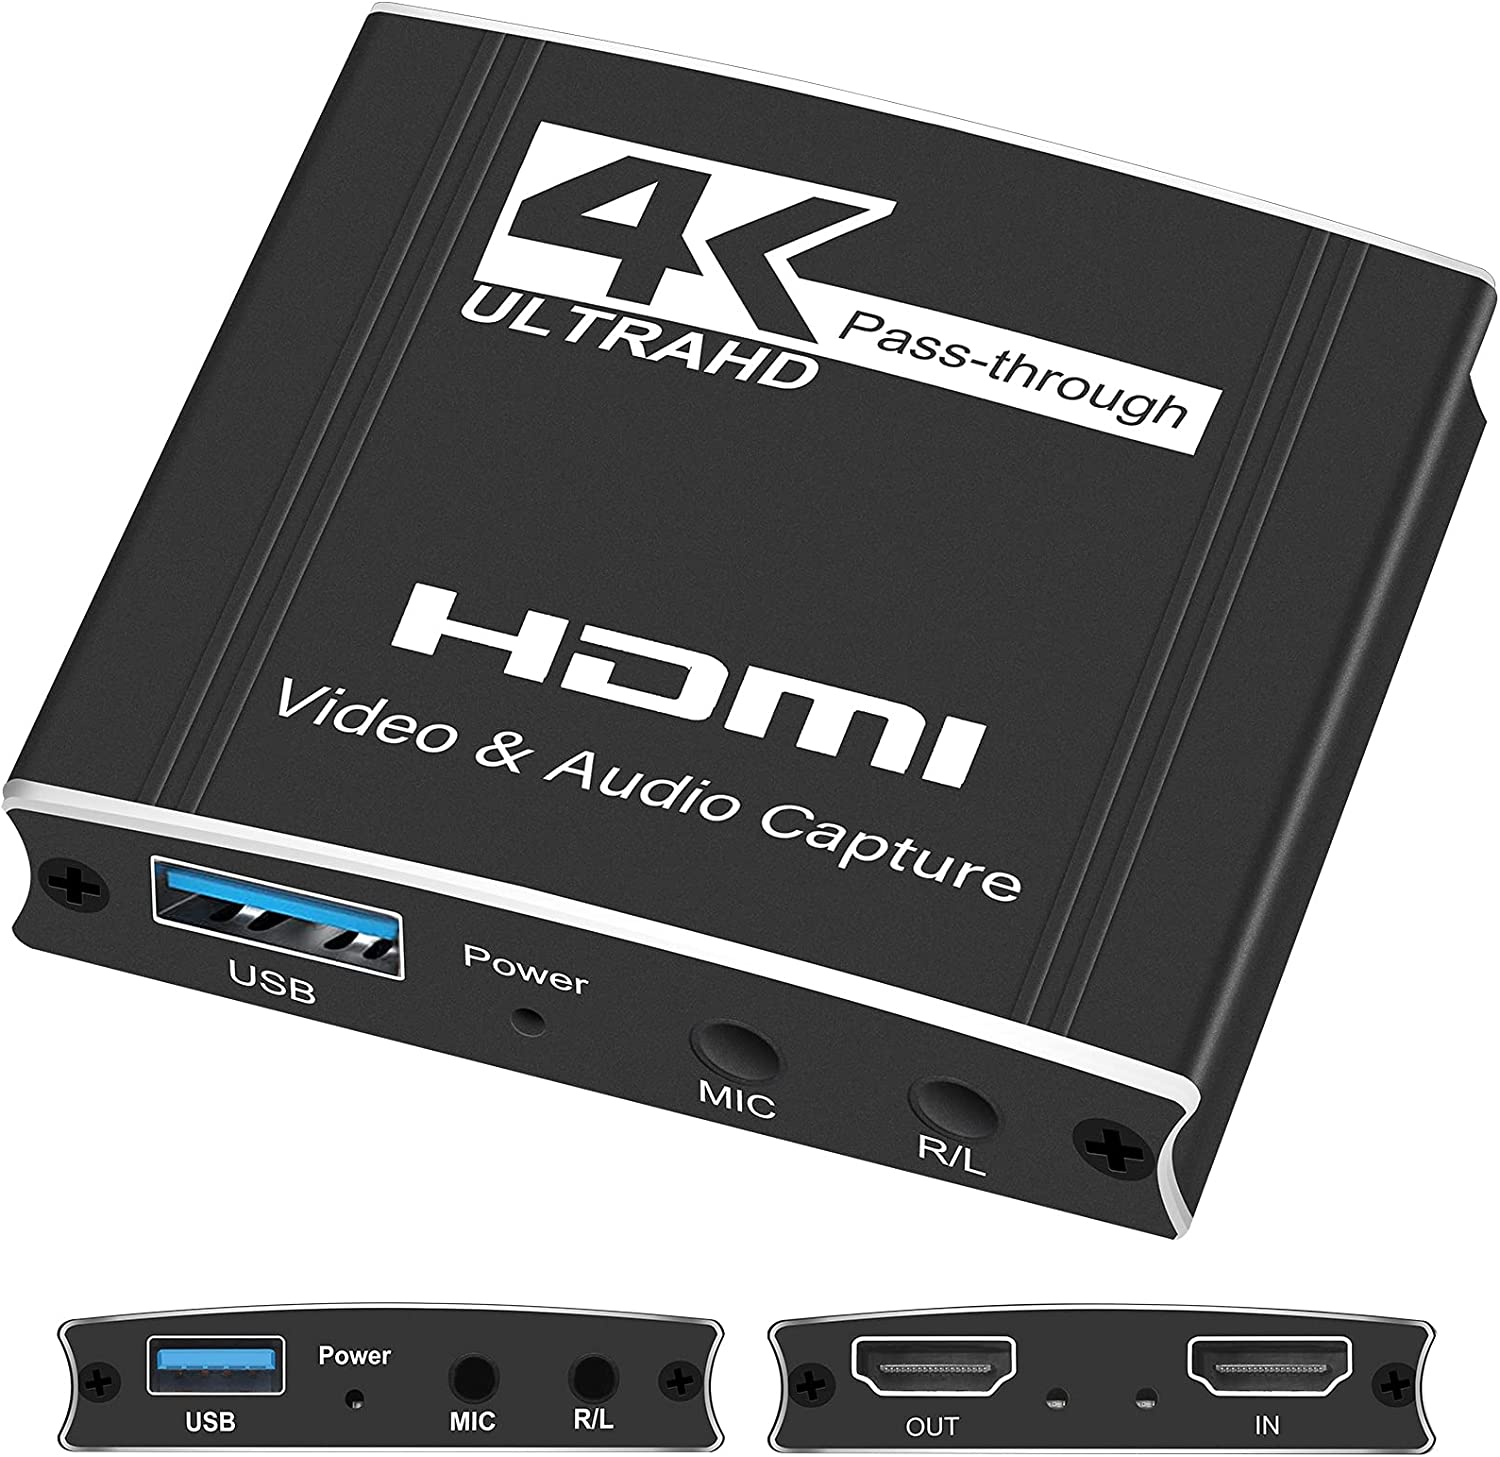 TKHIN Capture Card, Audio Video Capture Card with Mic Jack 4K HDMI Pass Through, 1080p 60fps Video Recorder for Gaming/Live Streaming, Works for Nintendo Switch/PS4/Xbox/OBS/Camera/PC